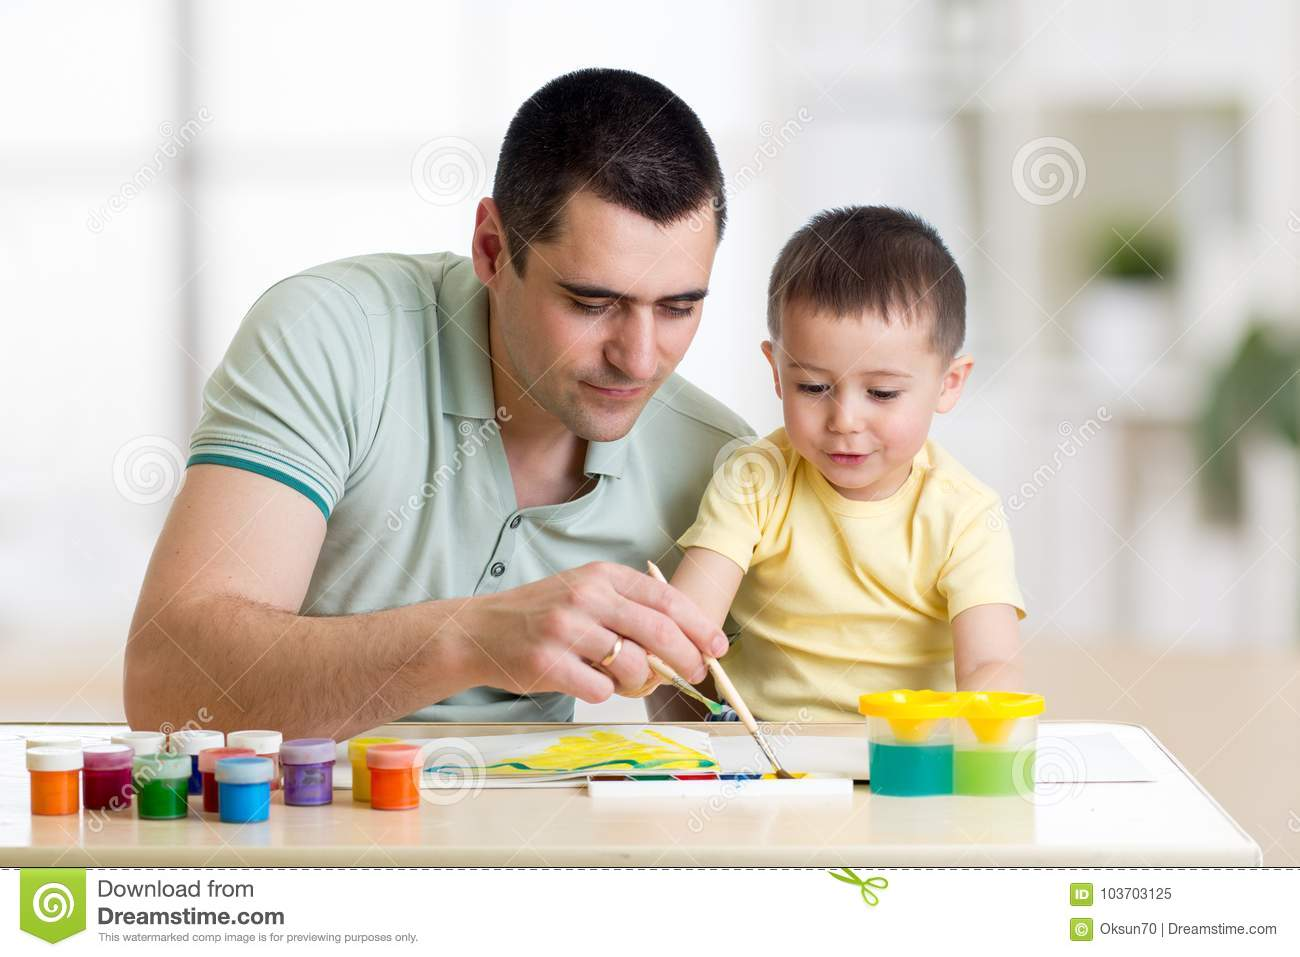 Father and child paint together. Dad teaches son how to paint correct and beautiful on paper. Family creativity and